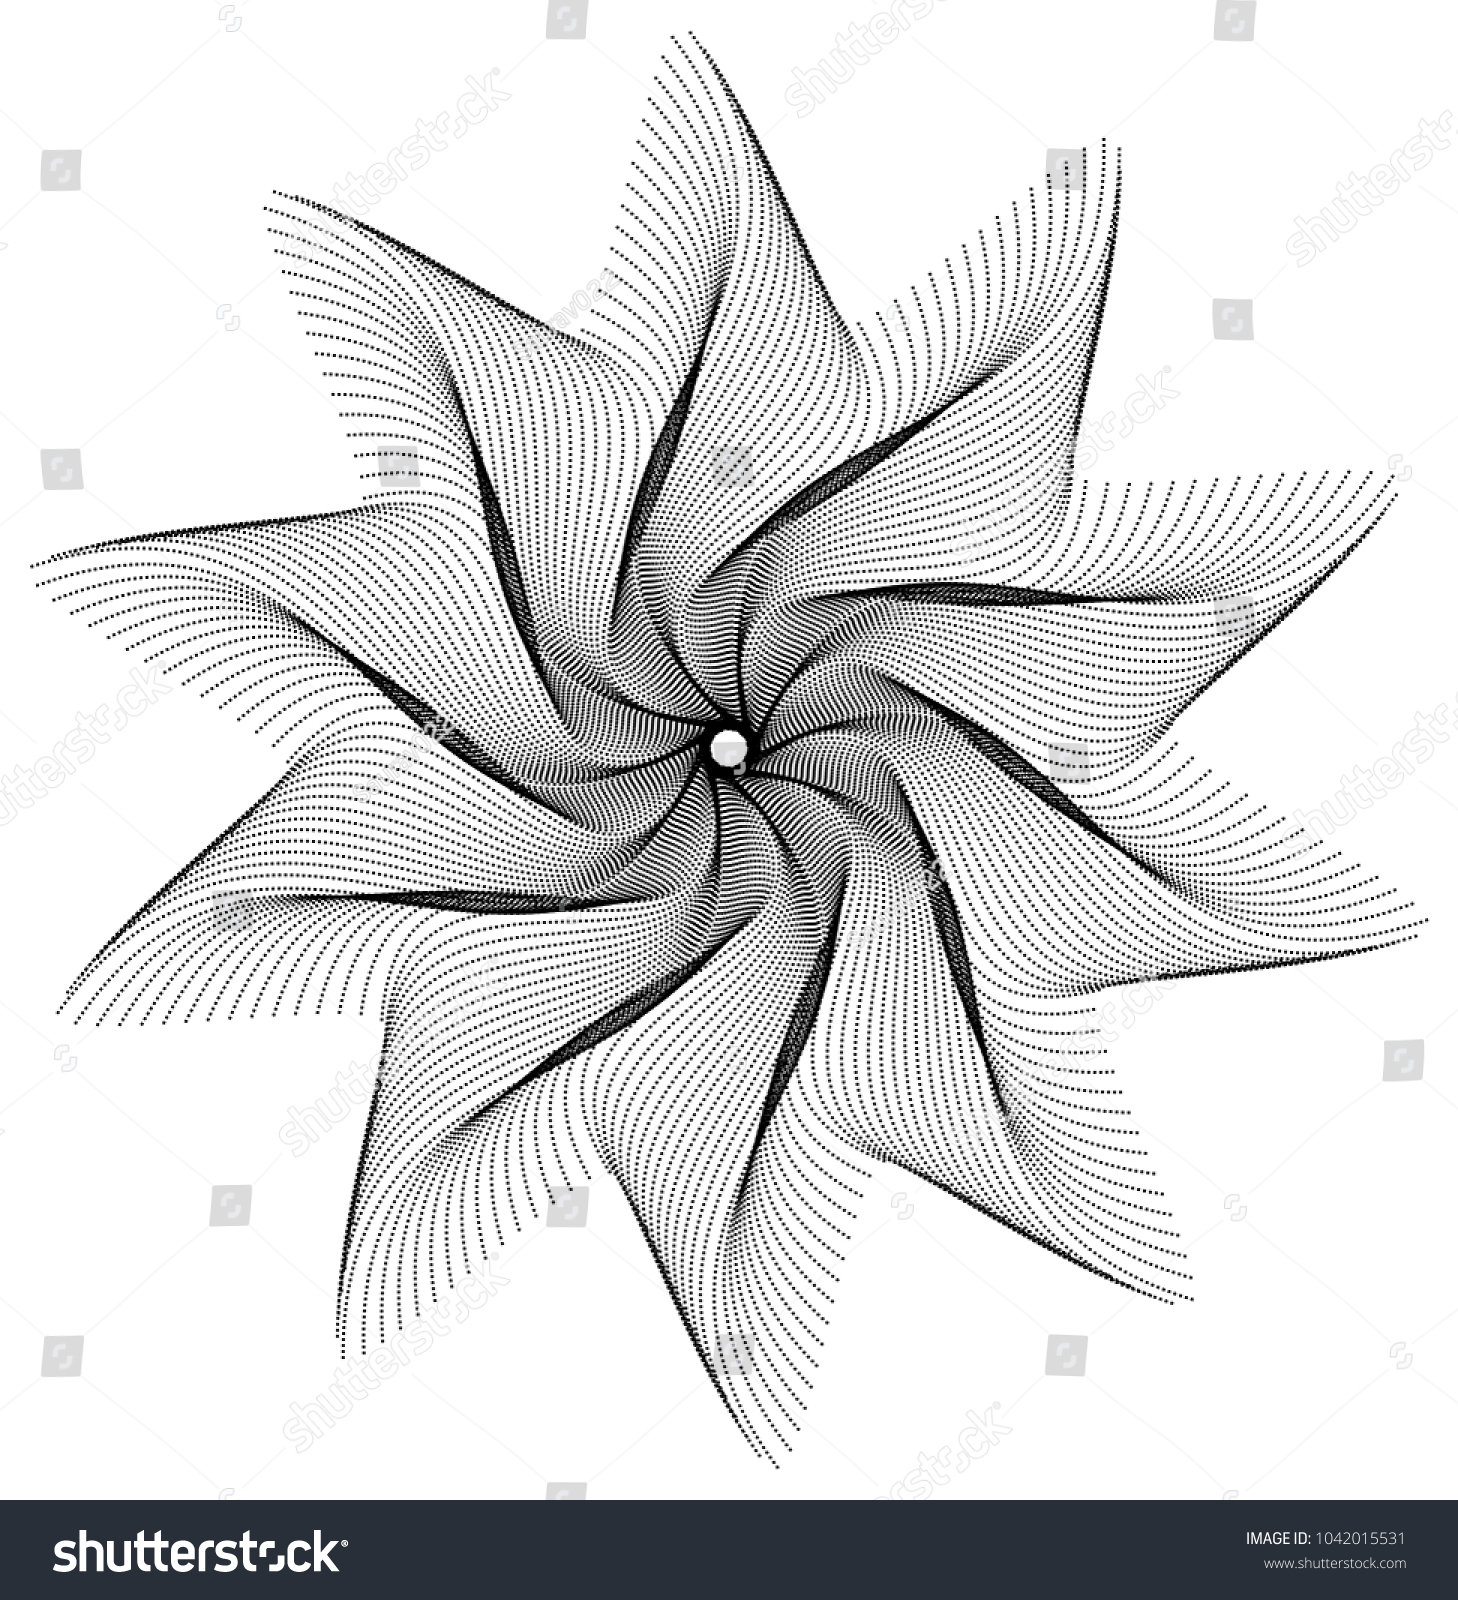 Star Shaped Geometric Wire Frame Stock Vector 1042015531 - Shutterstock